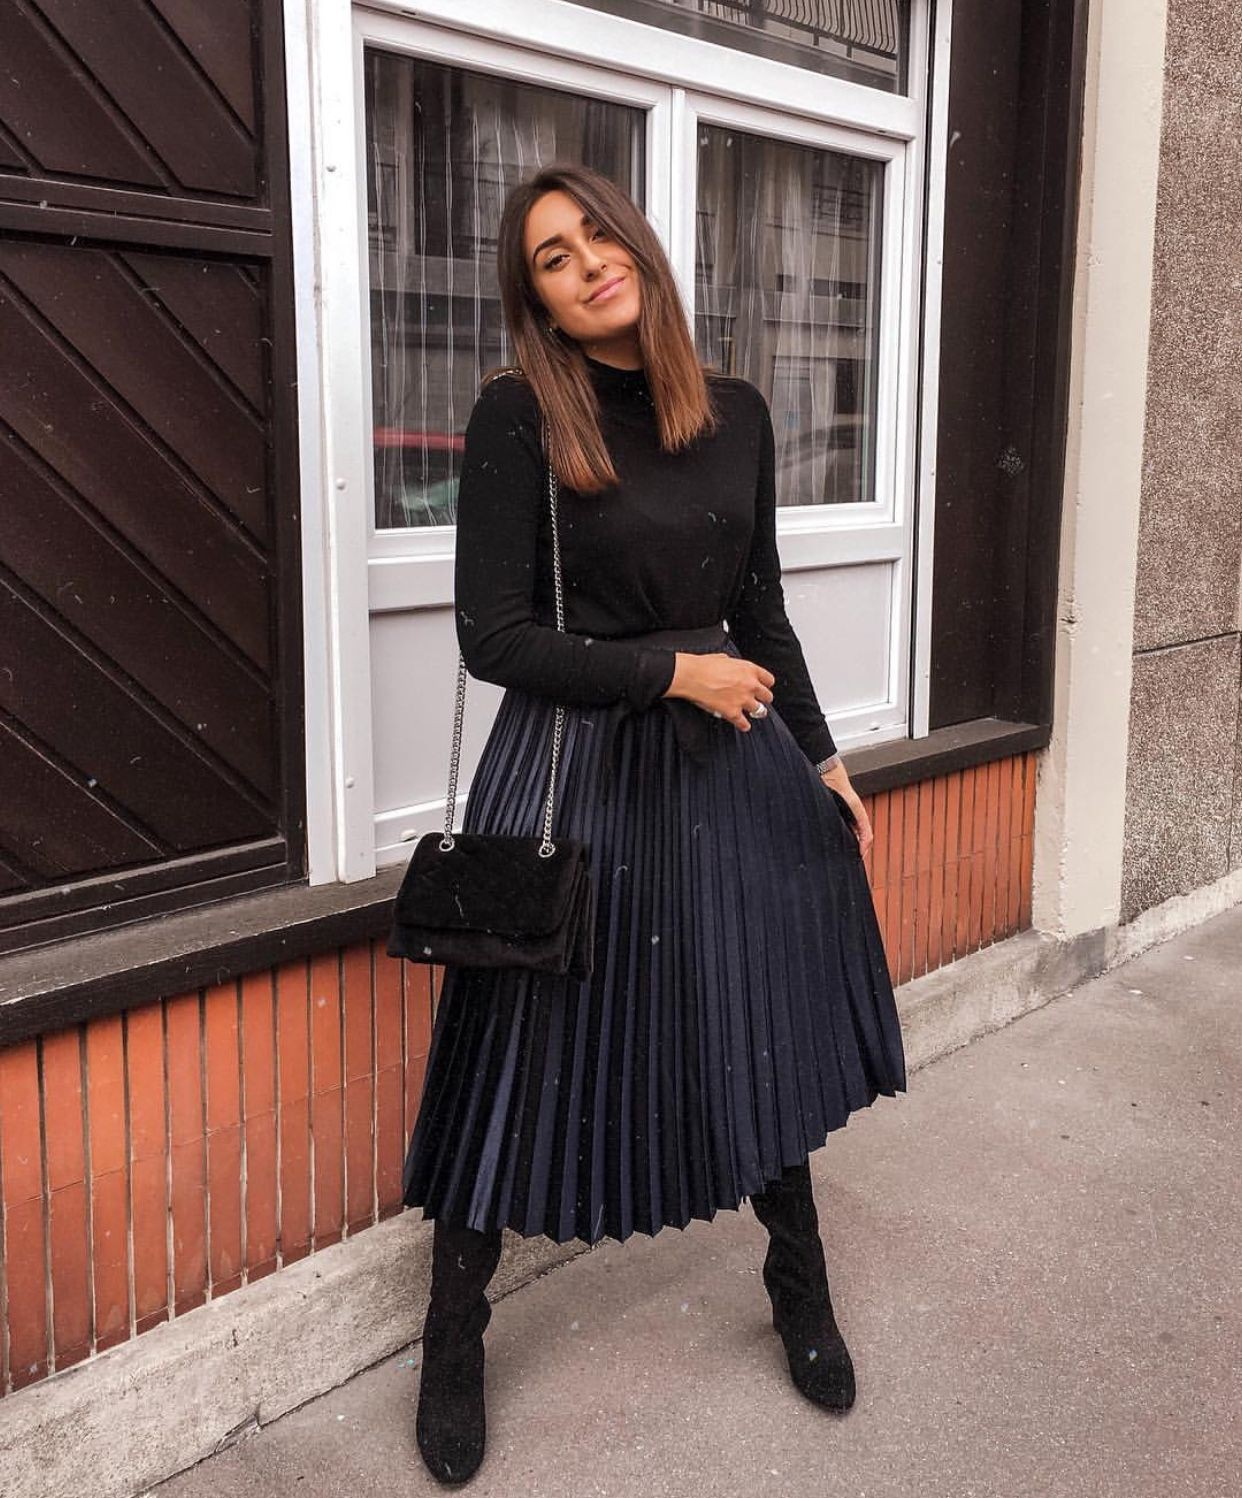 Black pleated skirt outfit winter